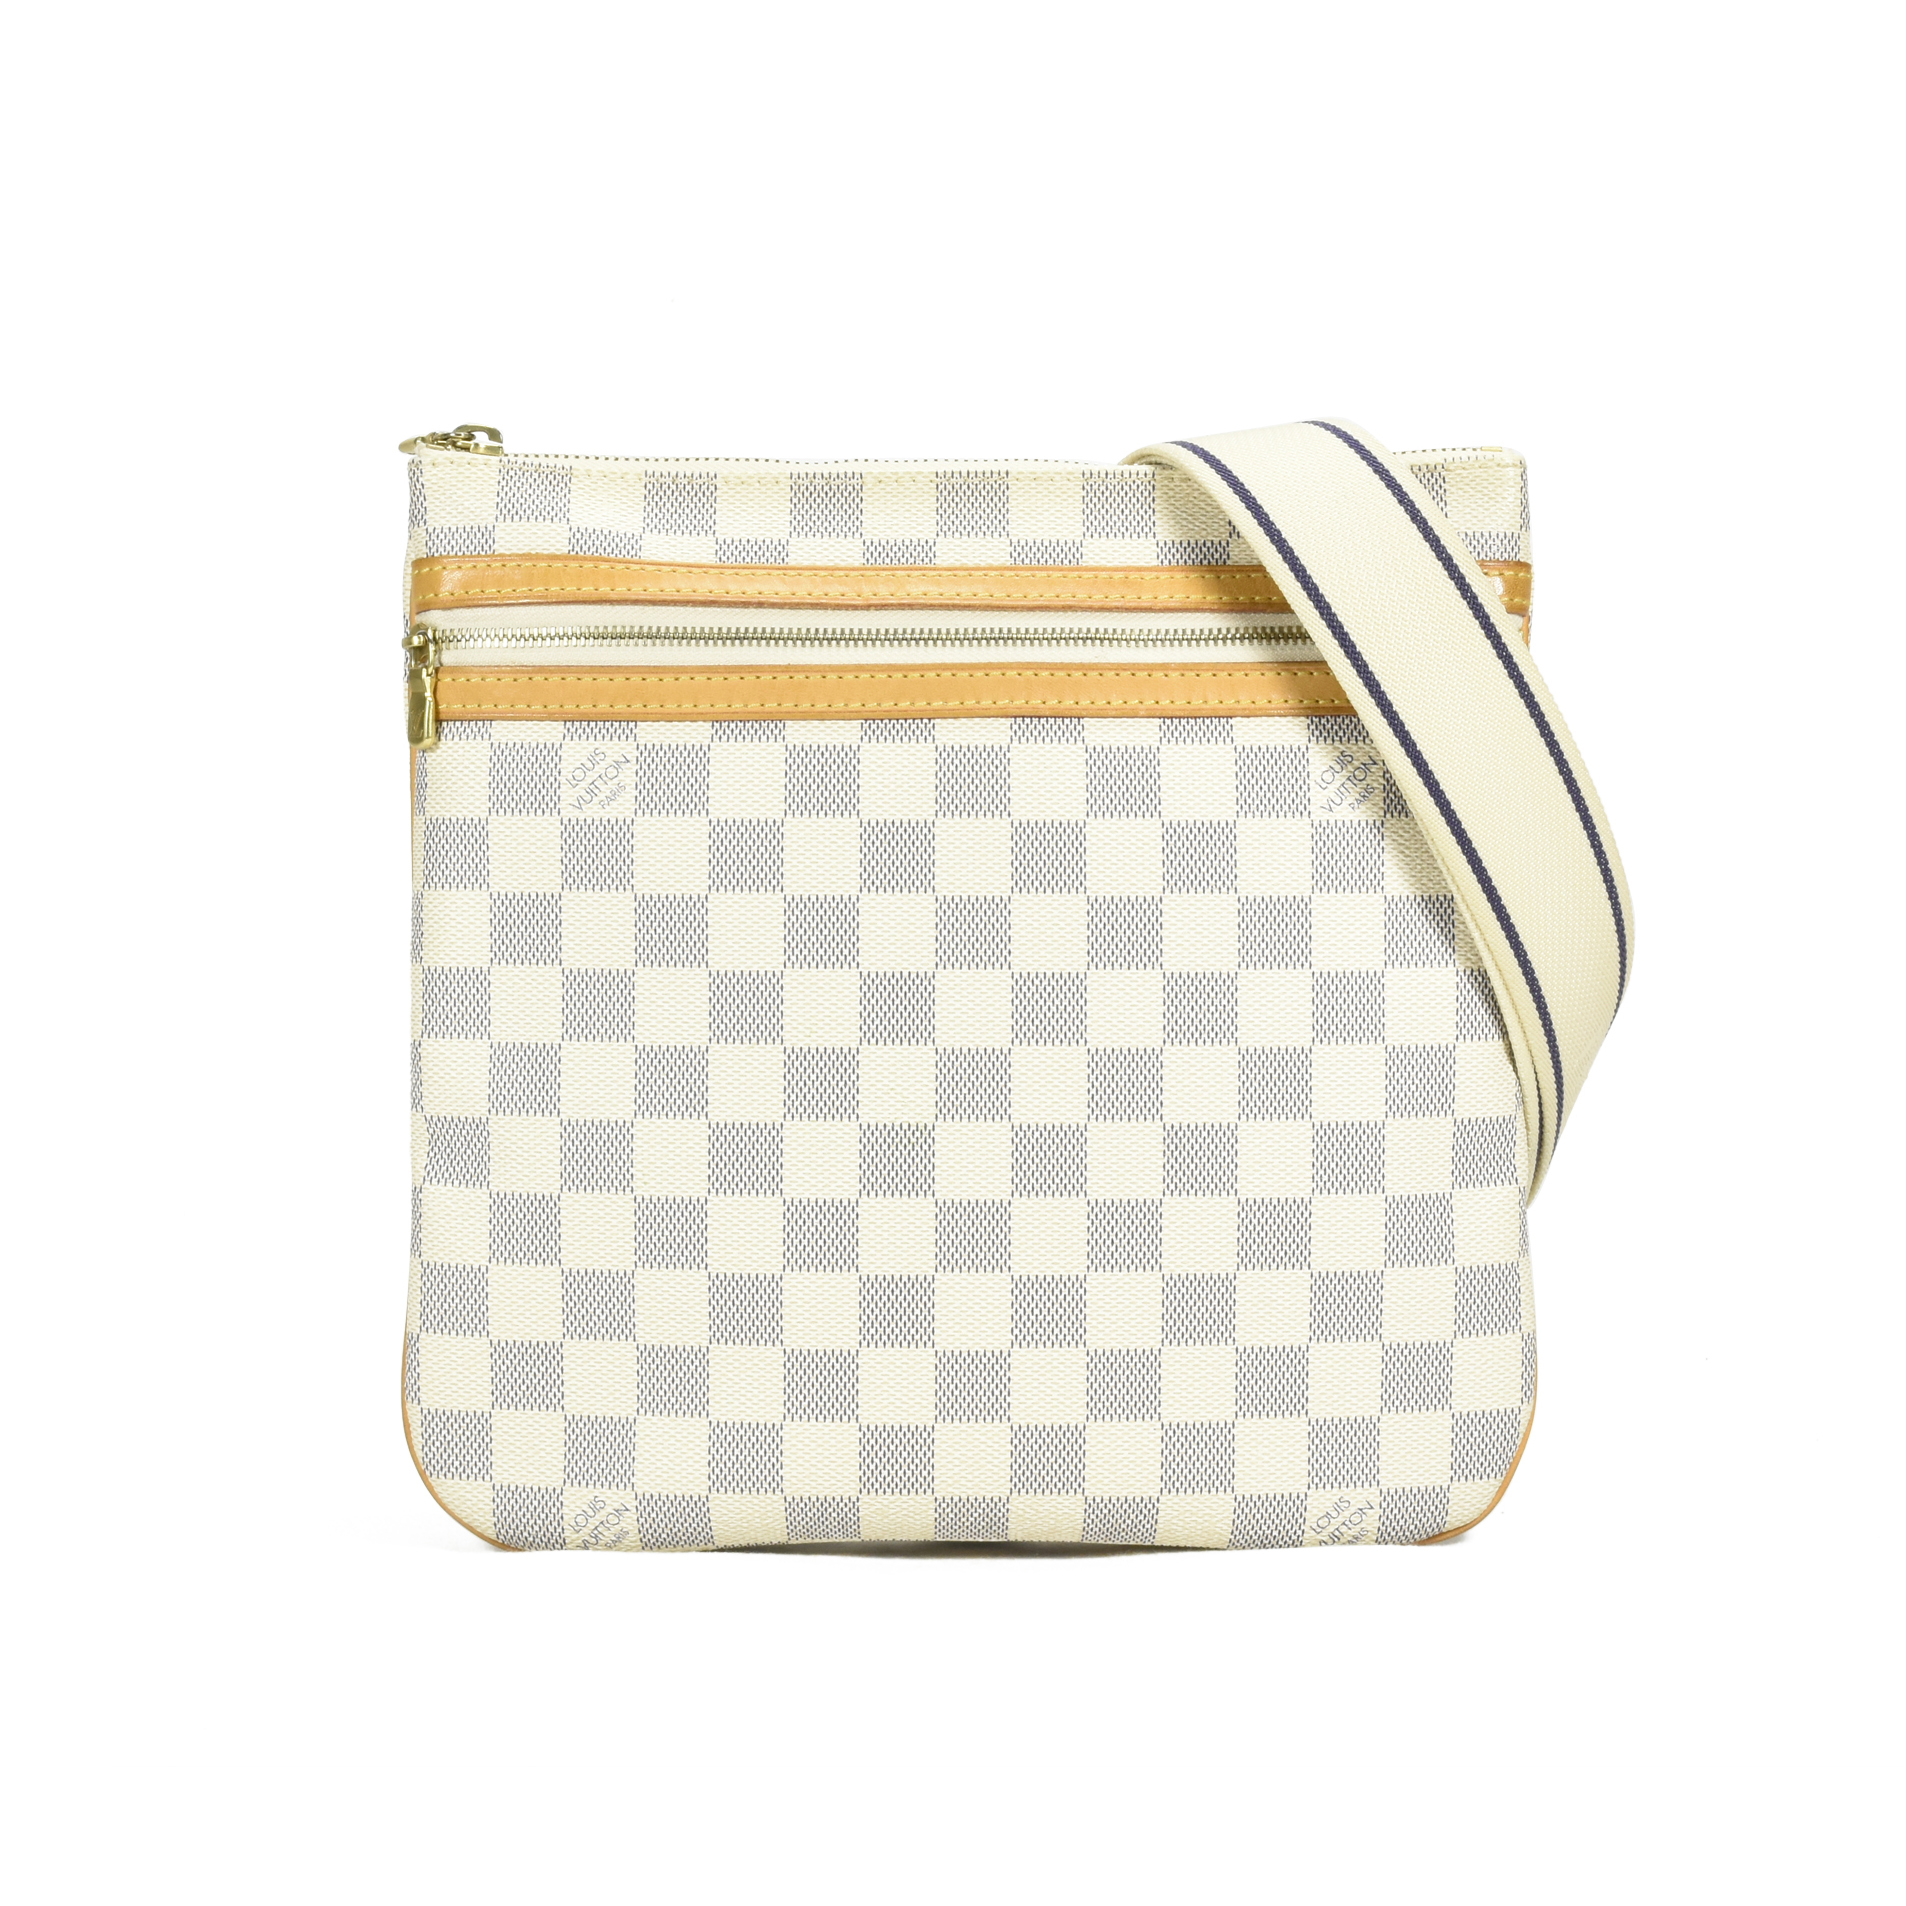 a2057f560988 Authentic Second Hand Louis Vuitton Damier Azur Pochette Bosphore Crossbody  Bag (PSS-400-00003)